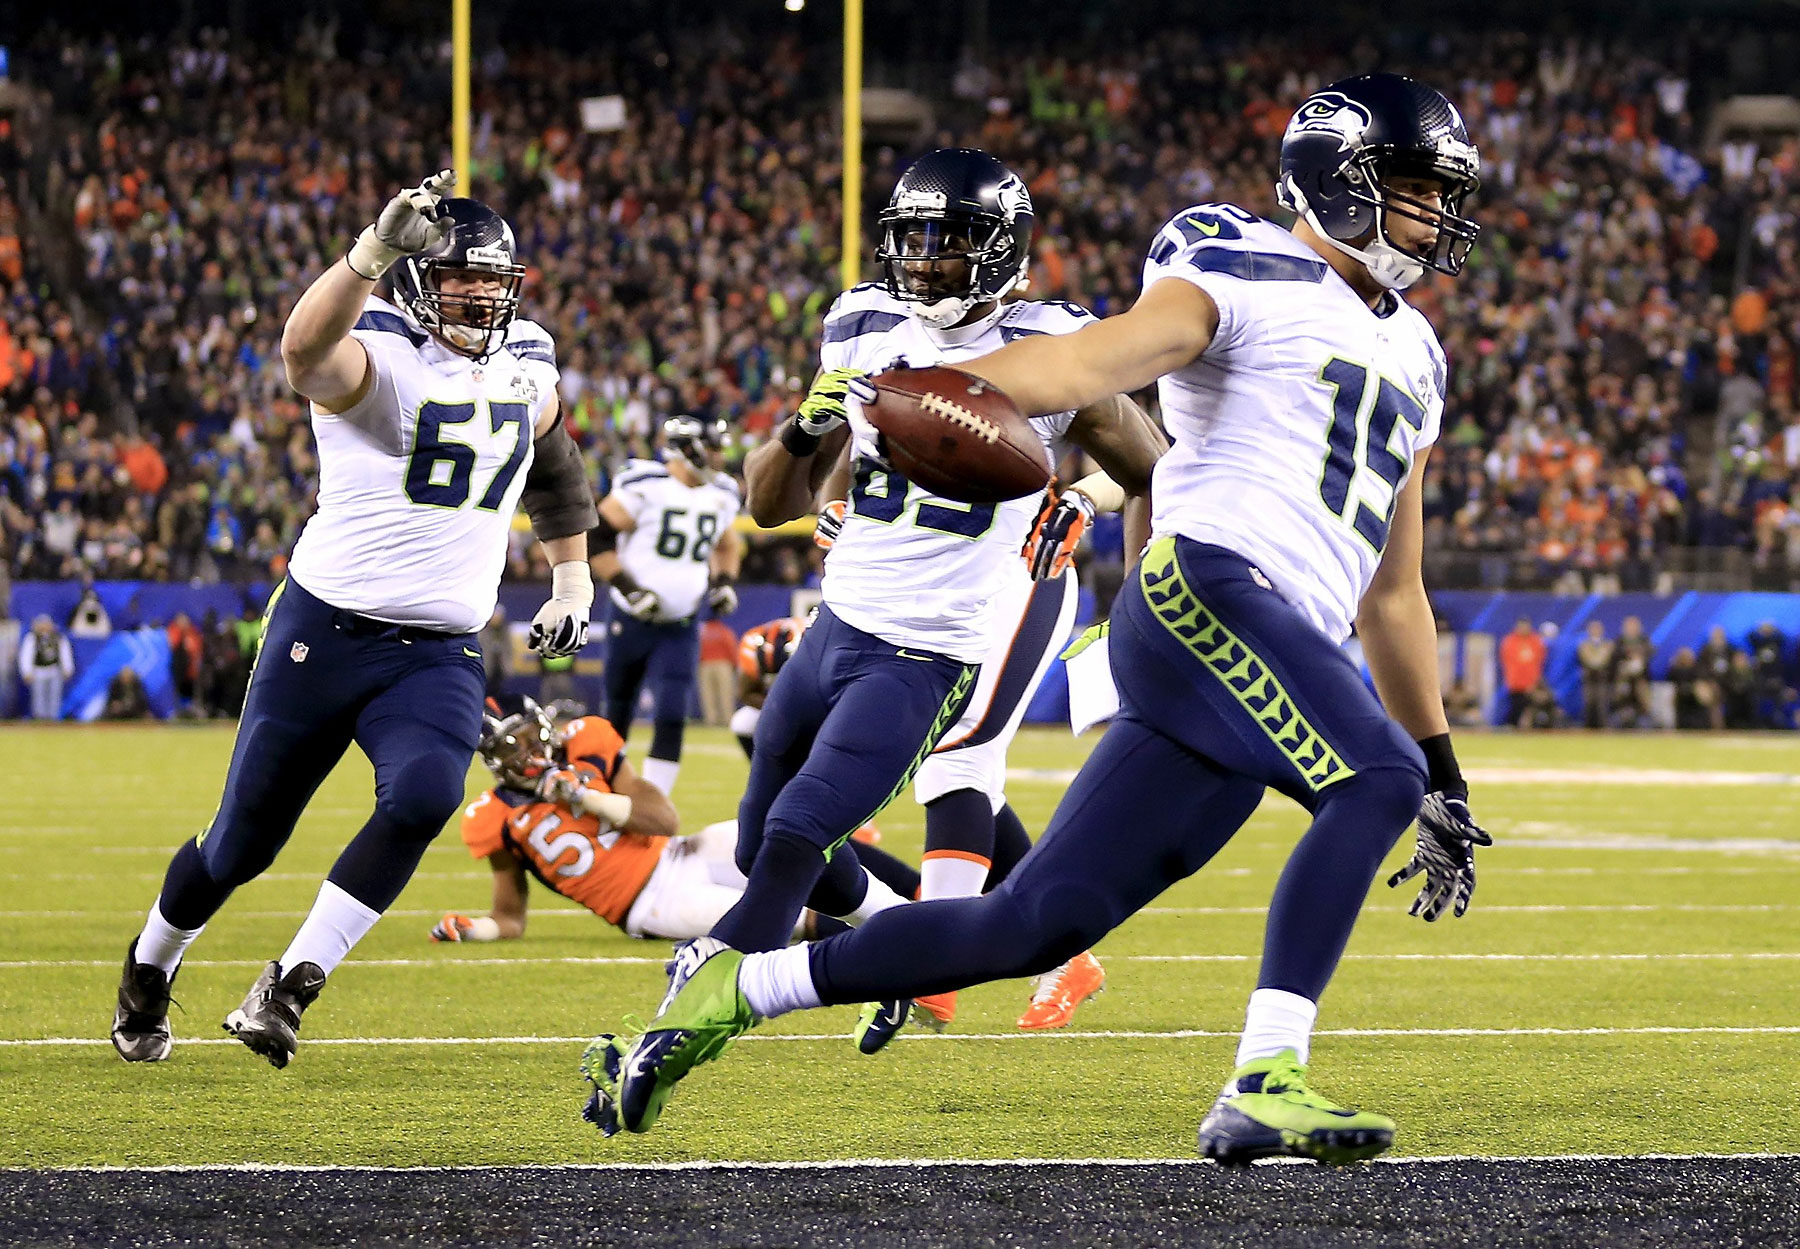 Wide receiver Jermaine Kearse of the Seattle Seahawks runs 23 yards to score a third quarter touchdown.